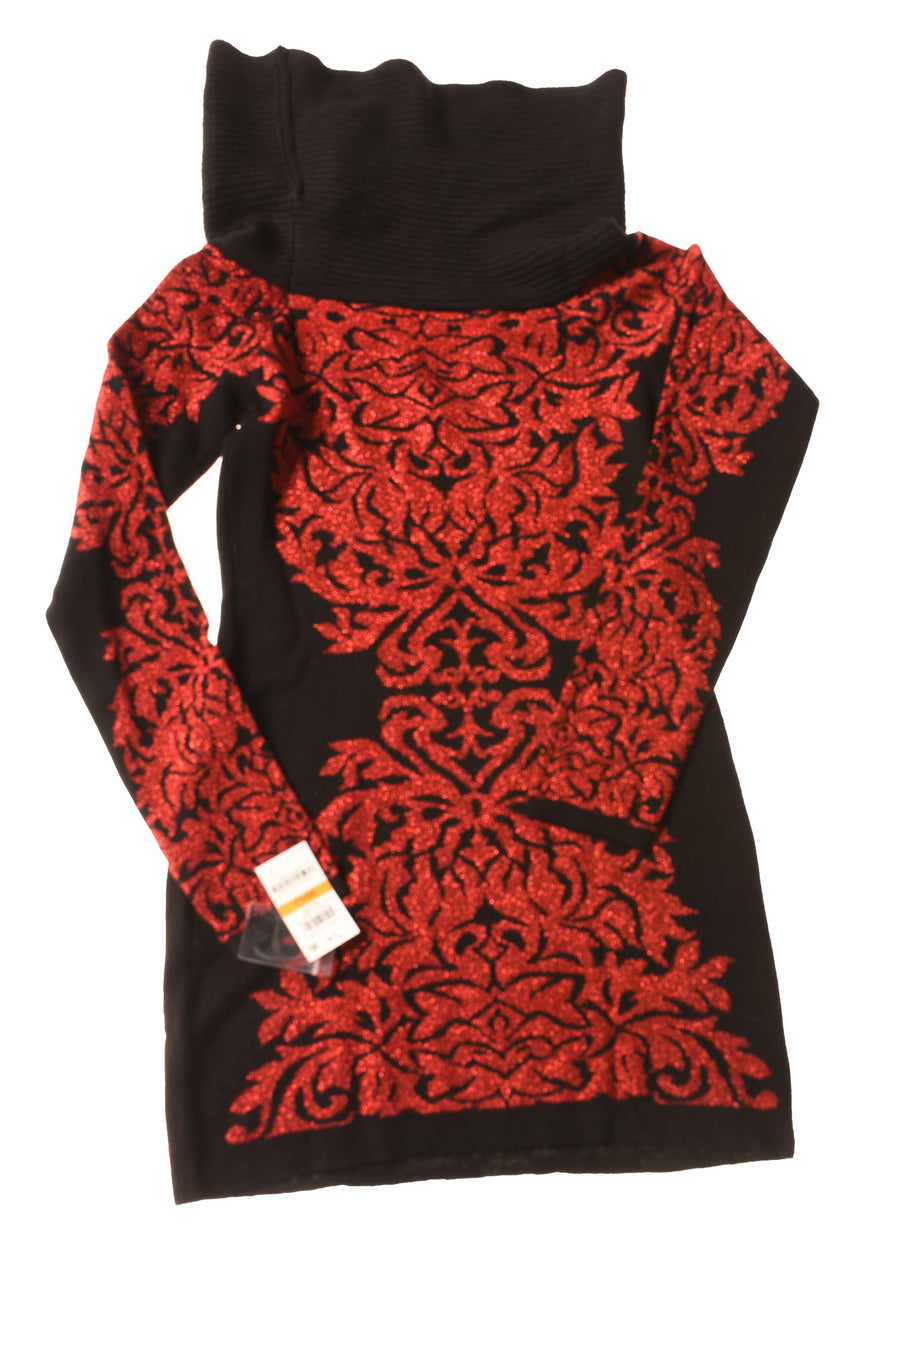 NEW International Concepts Women's Dress Small Black & Red